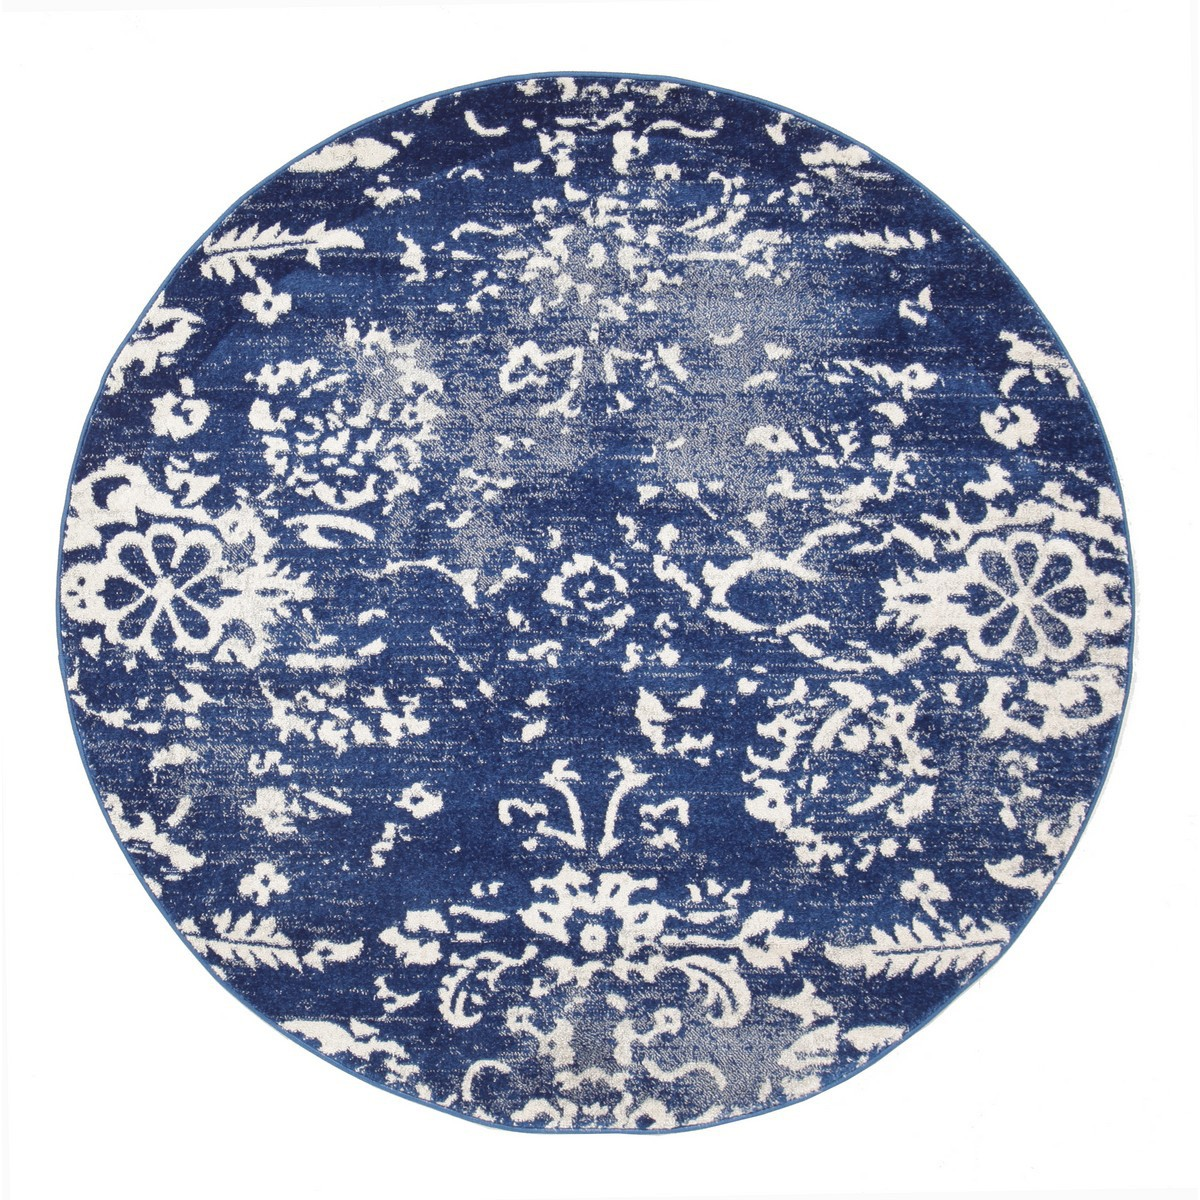 Evoke Skyline Turkish Made Modern Round Rug, 150cm, Navy